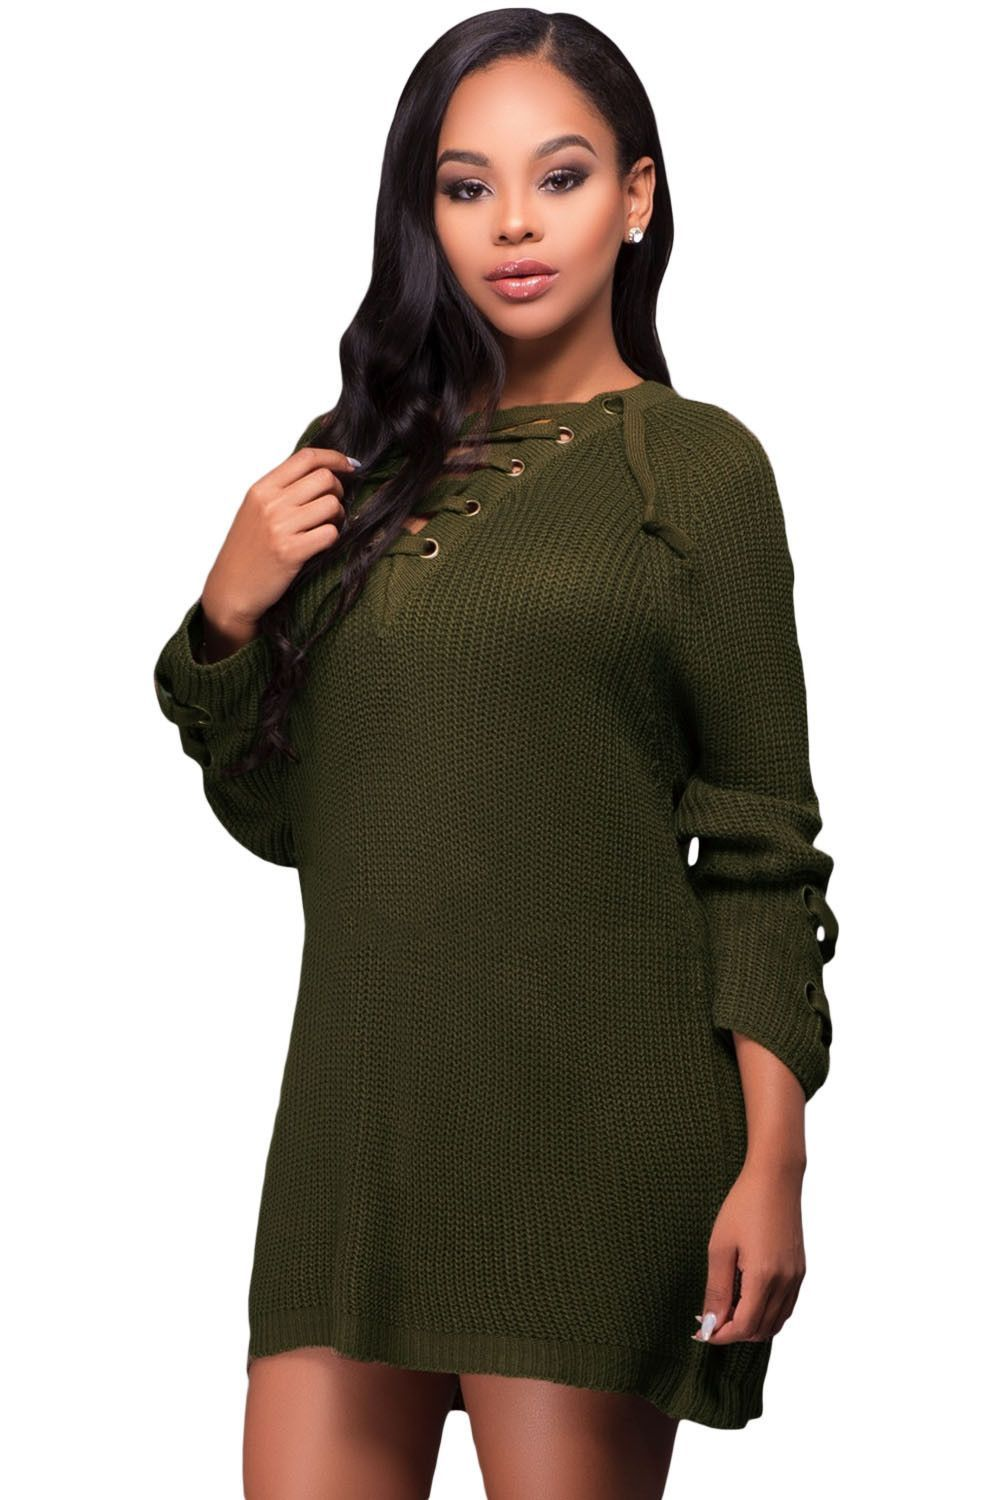 Army green crisscross knitted long sweater maverlly products